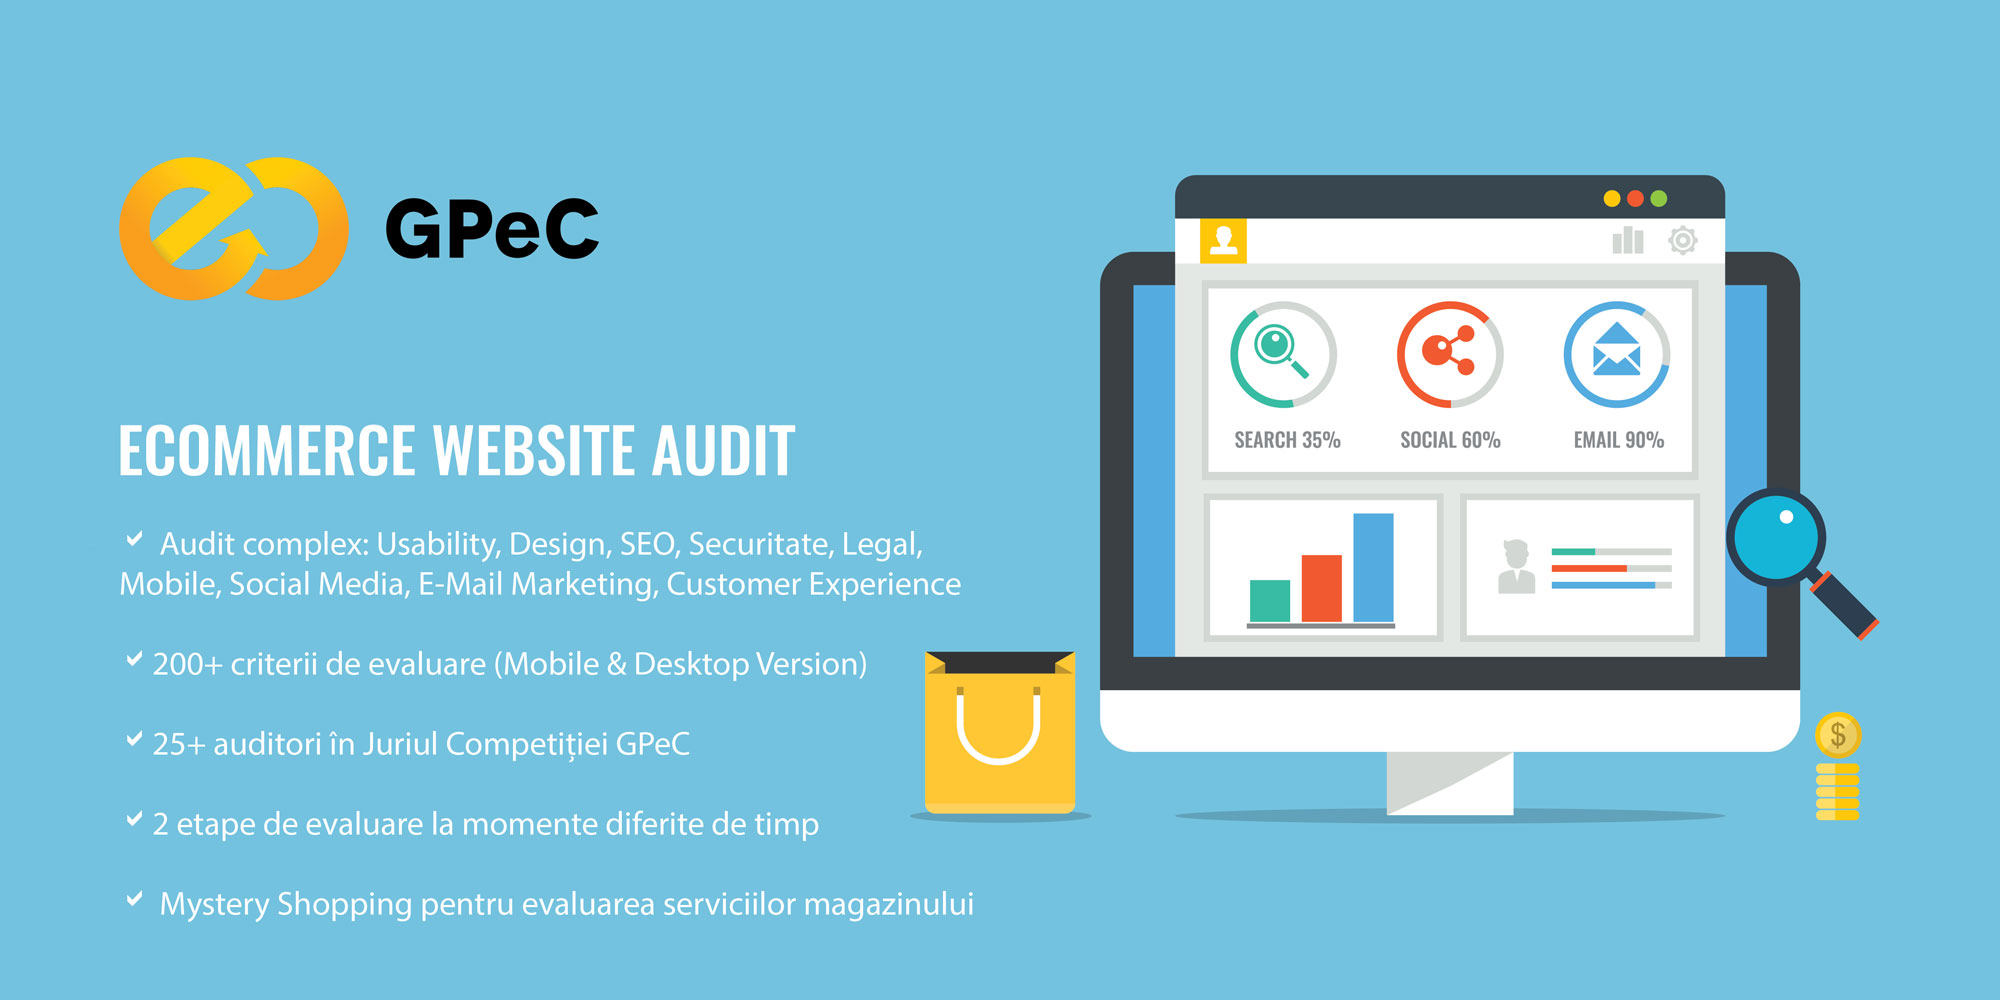 Audit de website e-commerce Competitia Magazinelor Online GPeC